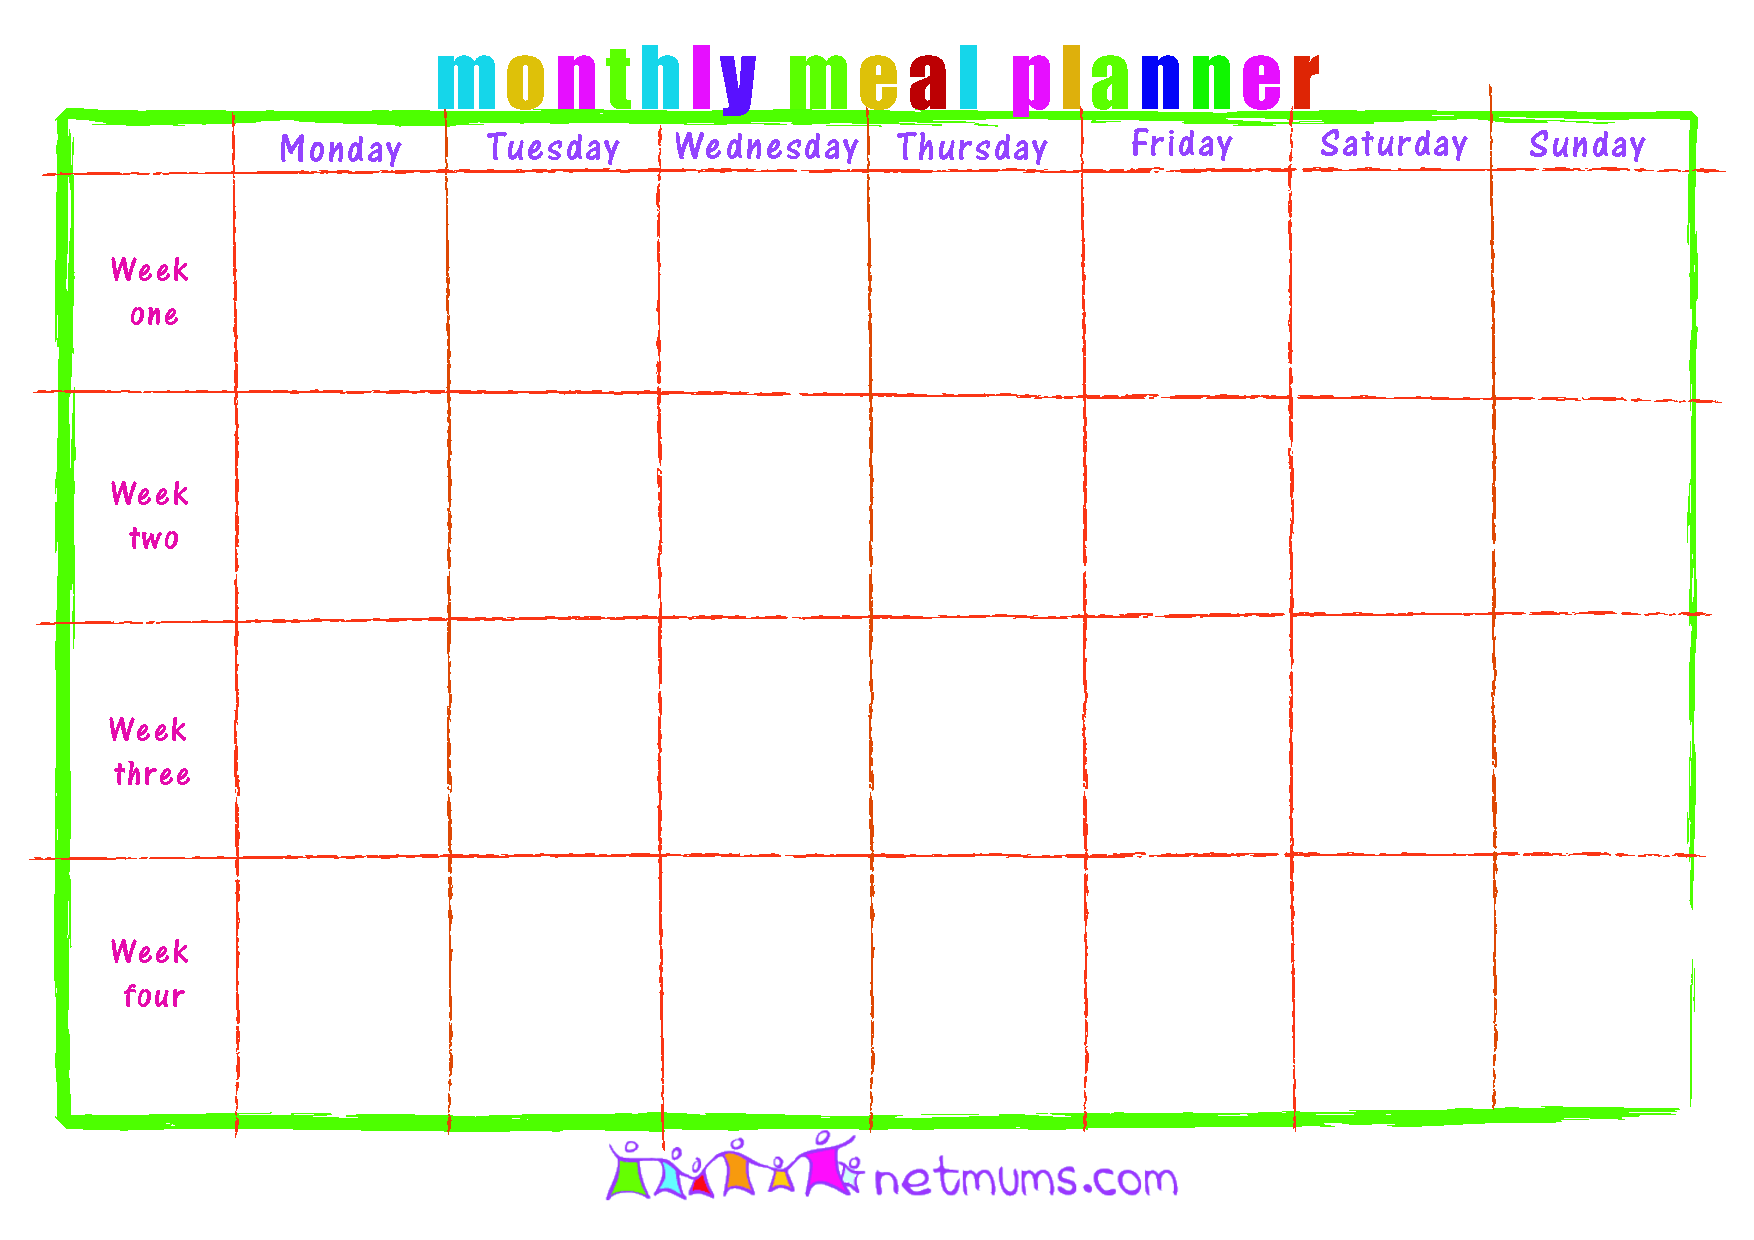 Calendar Template - Blank Monthly Calendar Template, Free Monthly Meal ...